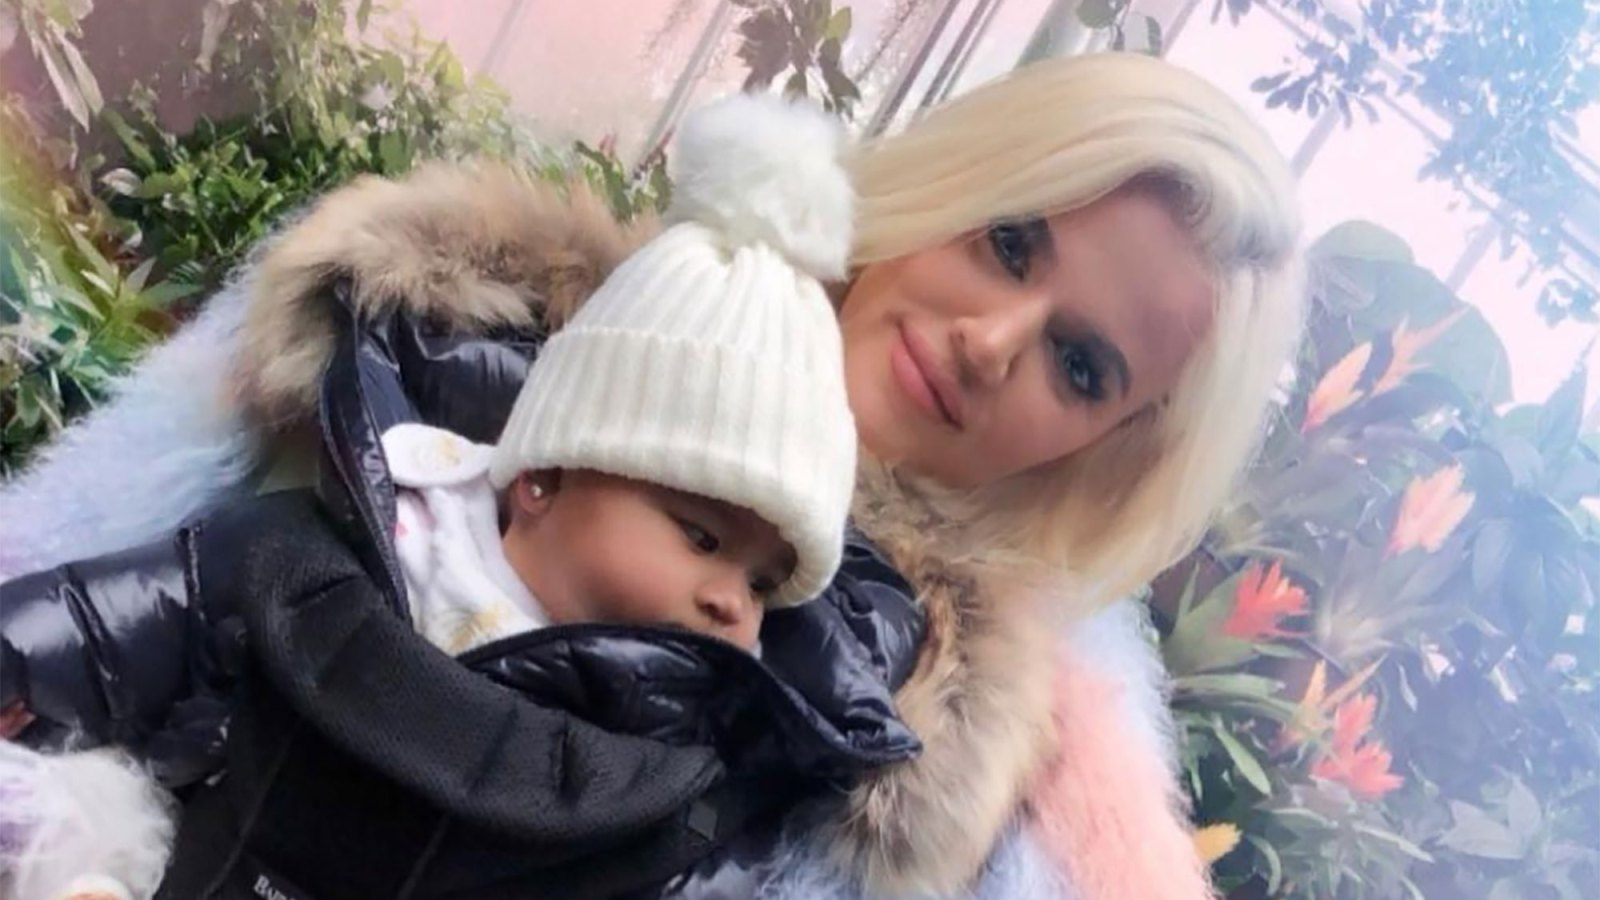 6839343dfae Khloe Kardashian Is Looking for a Biracial Baby Doll for True: 'Those  Silicone Babies Really Freak Me Out!'